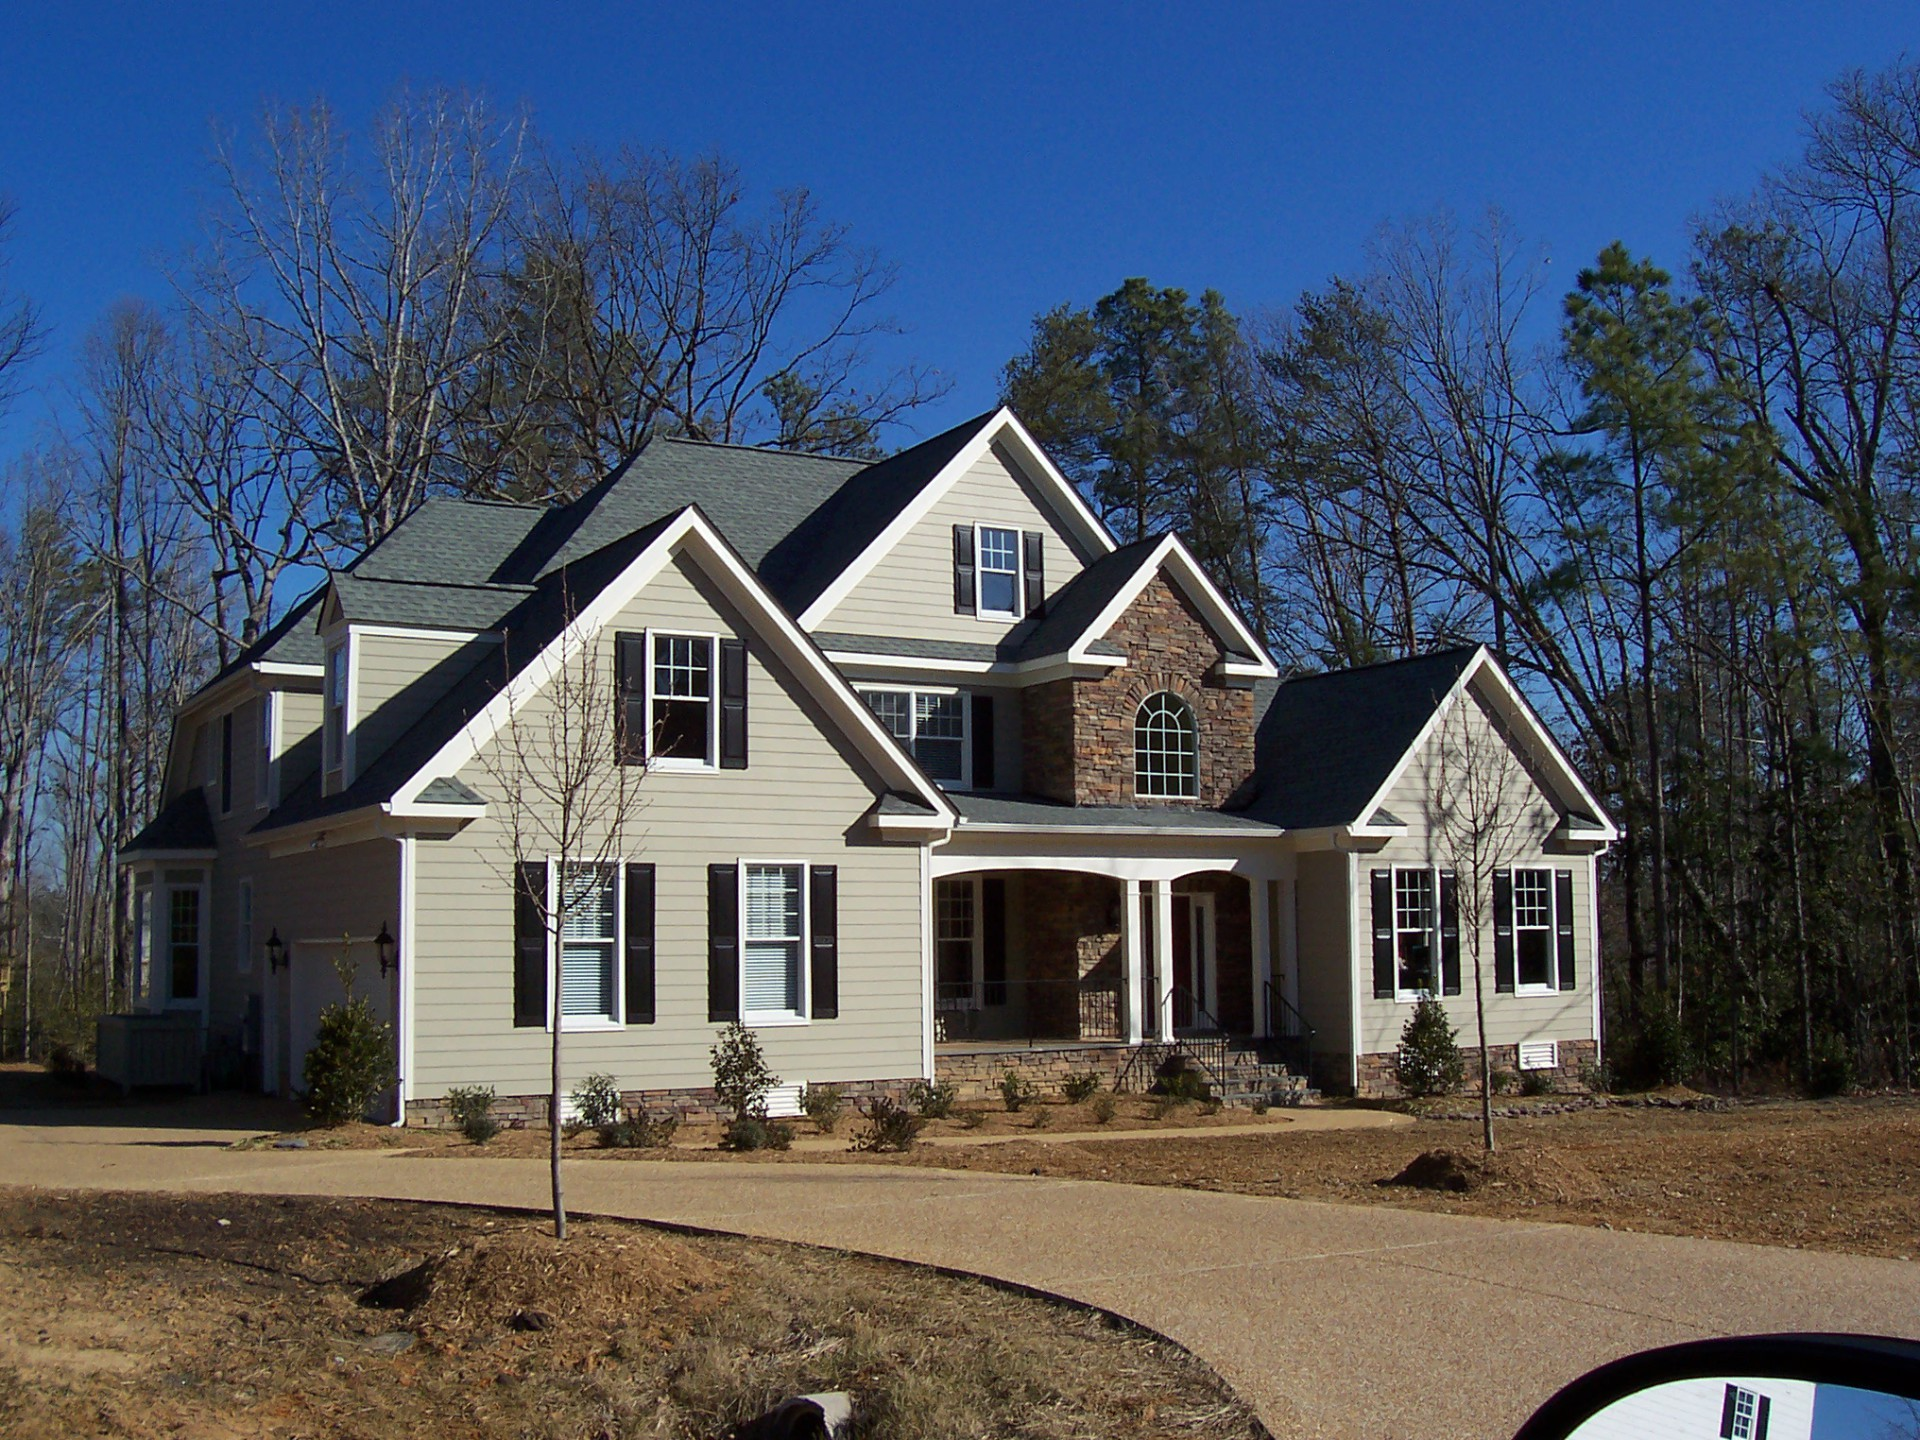 Williamsburg, Poquoson, Hampton Roads, Virginia Home Builder